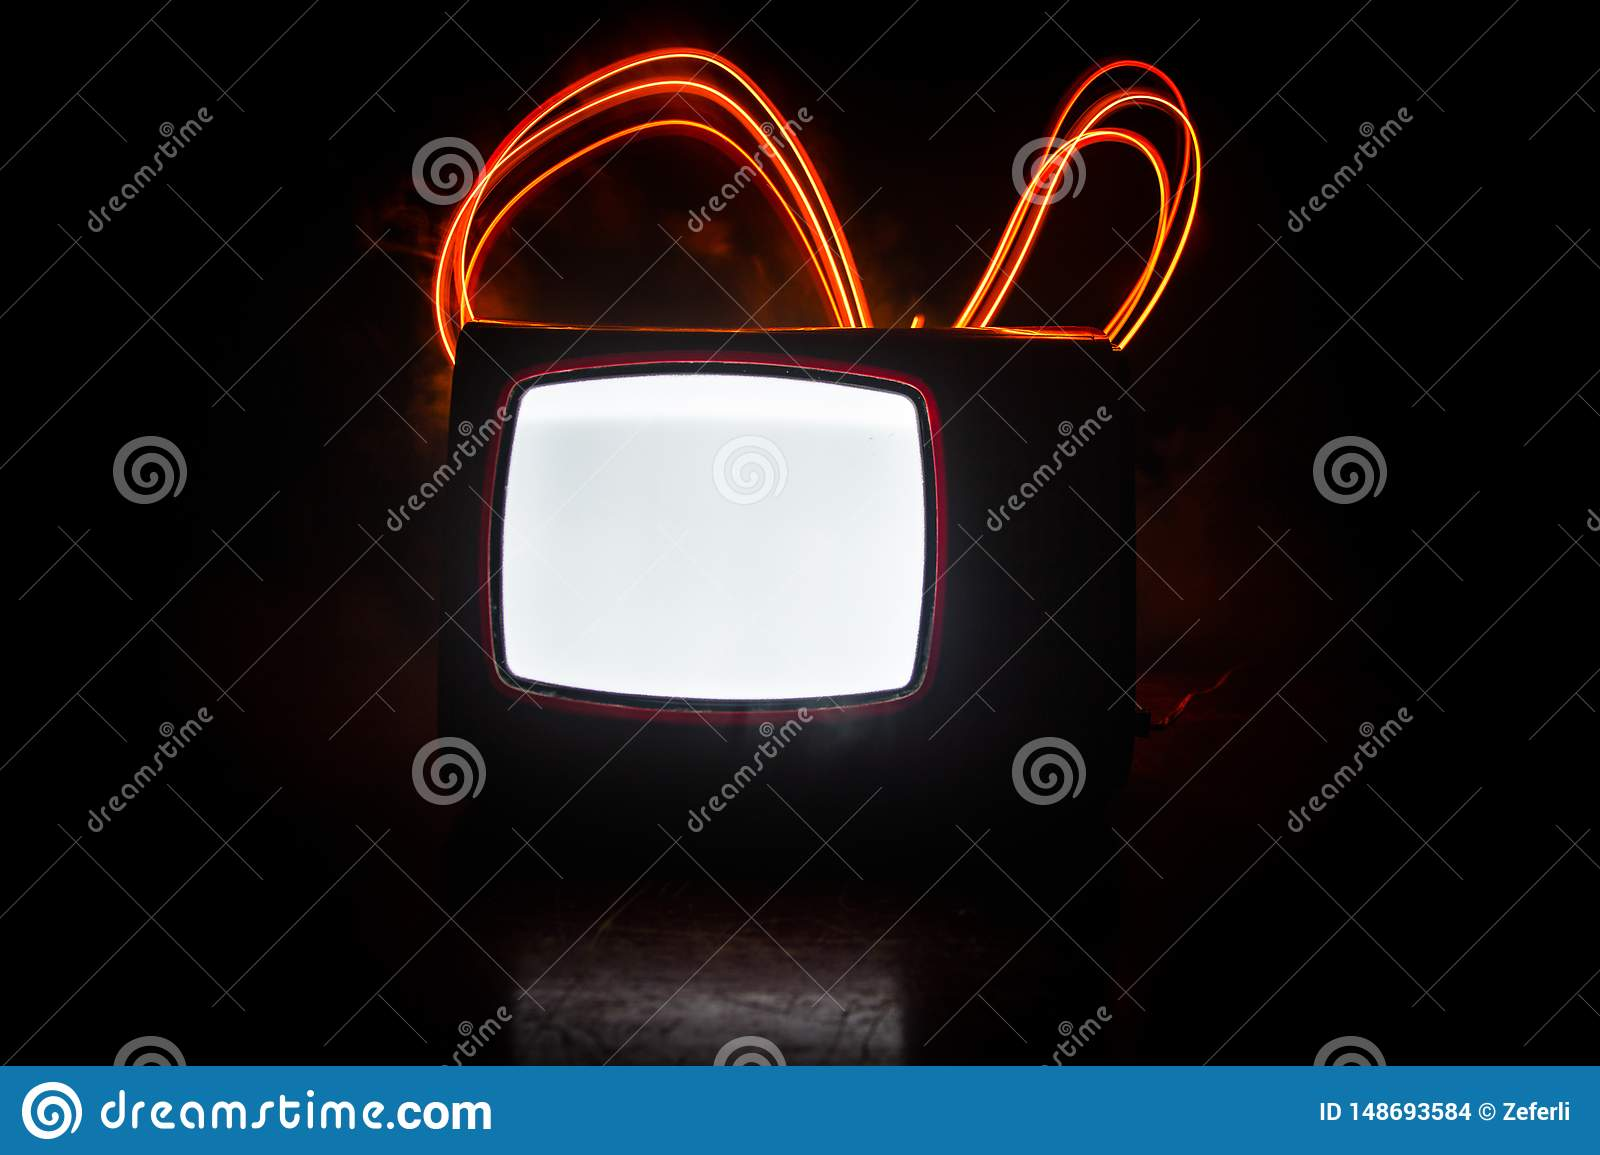 Old vintage red TV with white noise on dark toned foggy background. Retro old Television reciever no signal